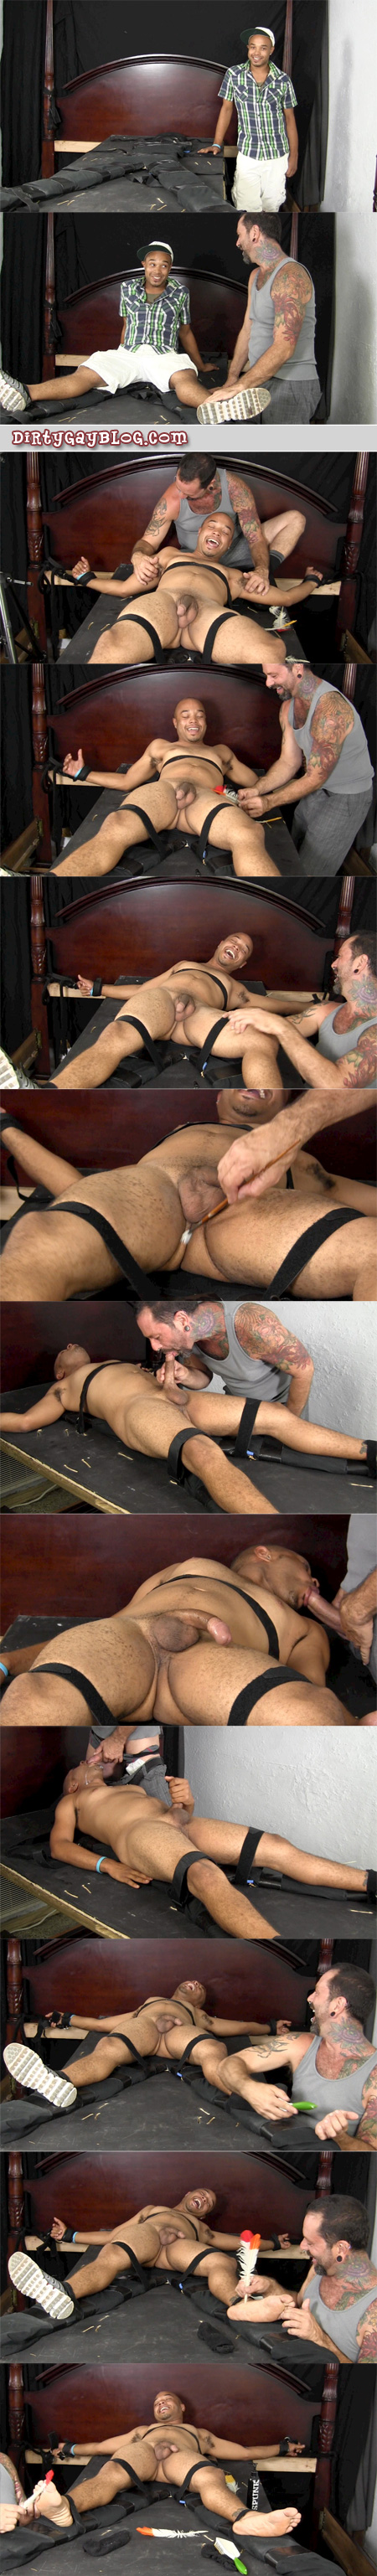 Handsome young black and Native American guy enjoys being tied up and tickled and receiving cum in his face.